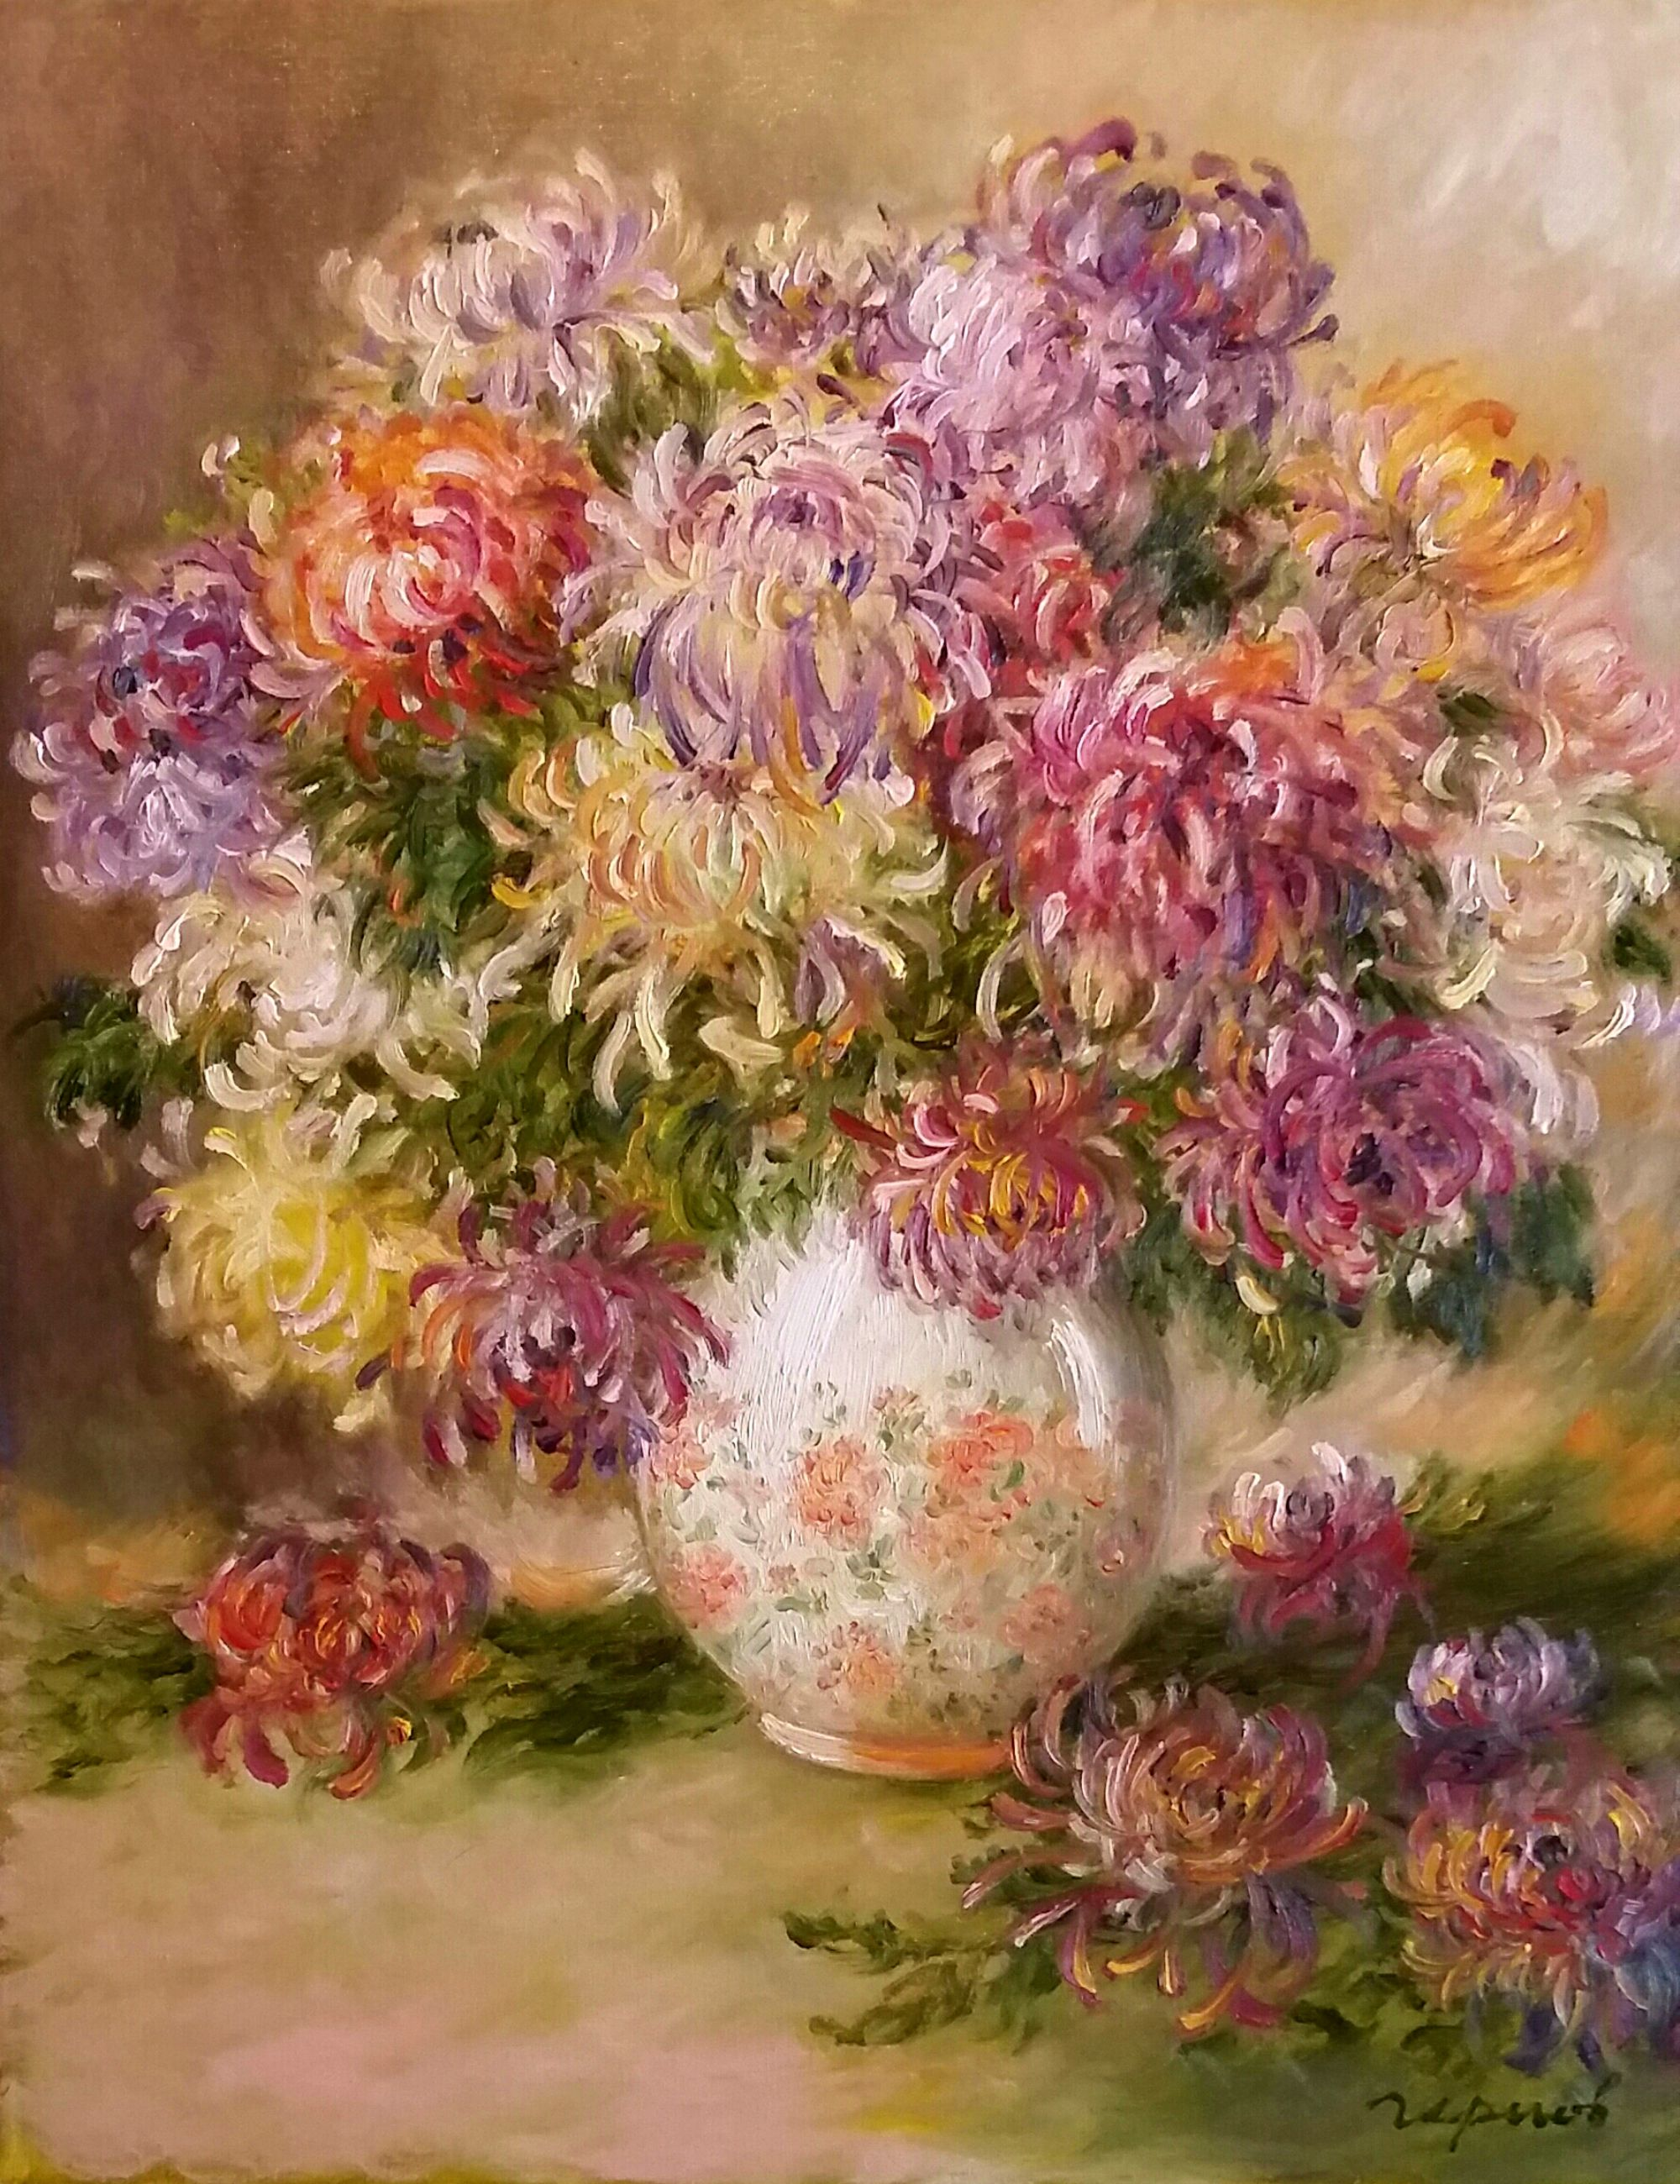 Chrysanthemums In A Porcelain Vase Painting Chrysanthemum Painting Flower Painting Floral Painting